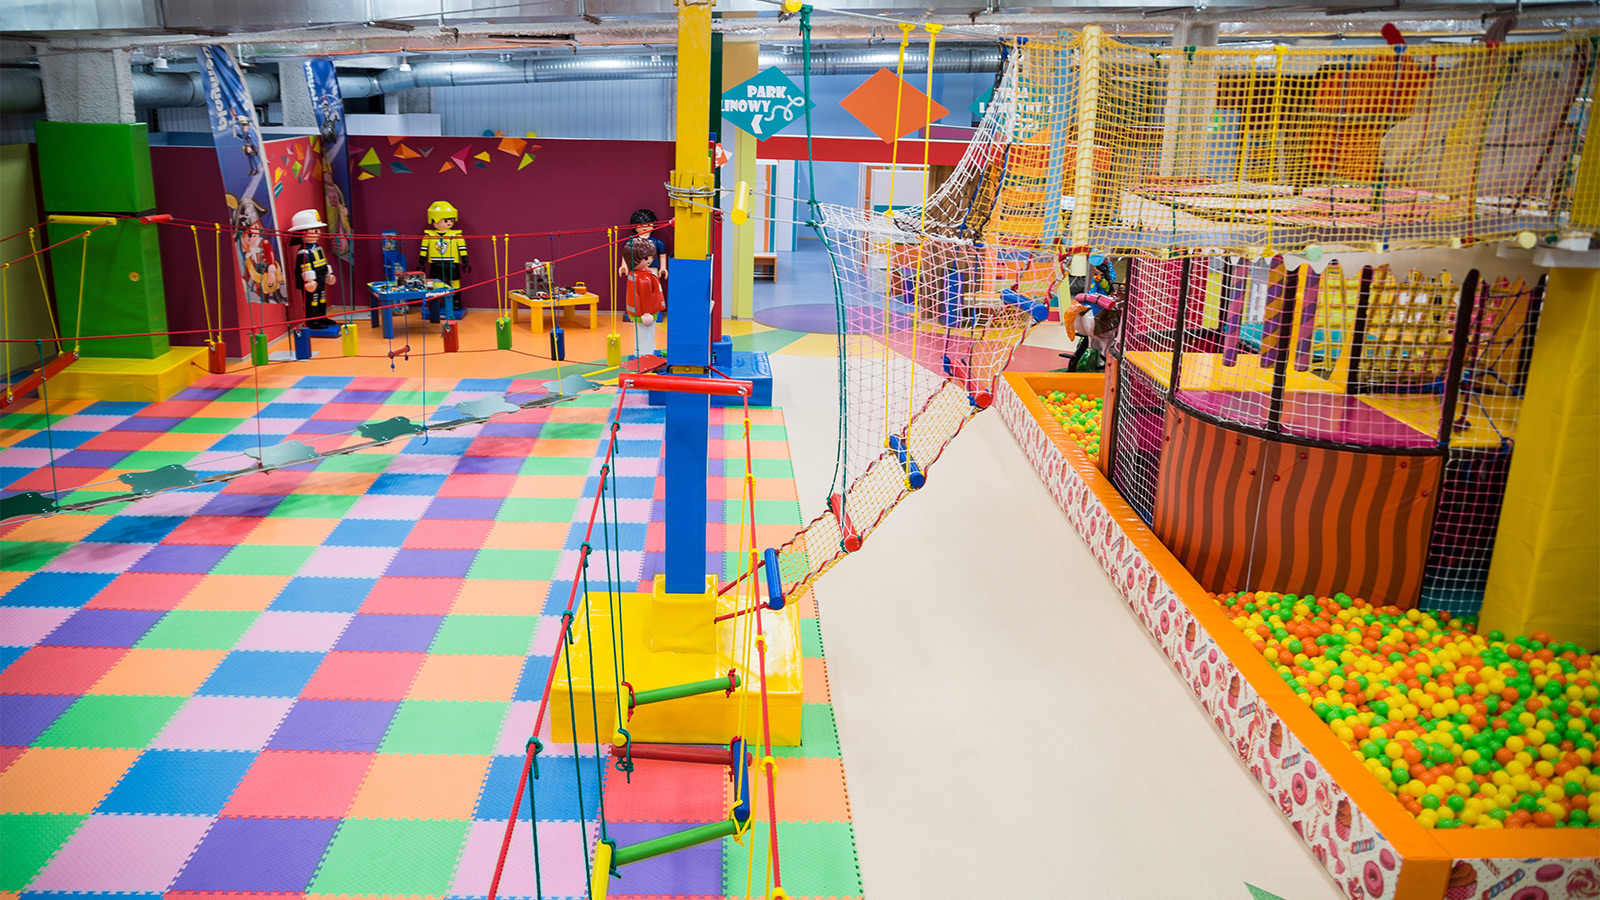 Design And Construction Of Adventure Parks